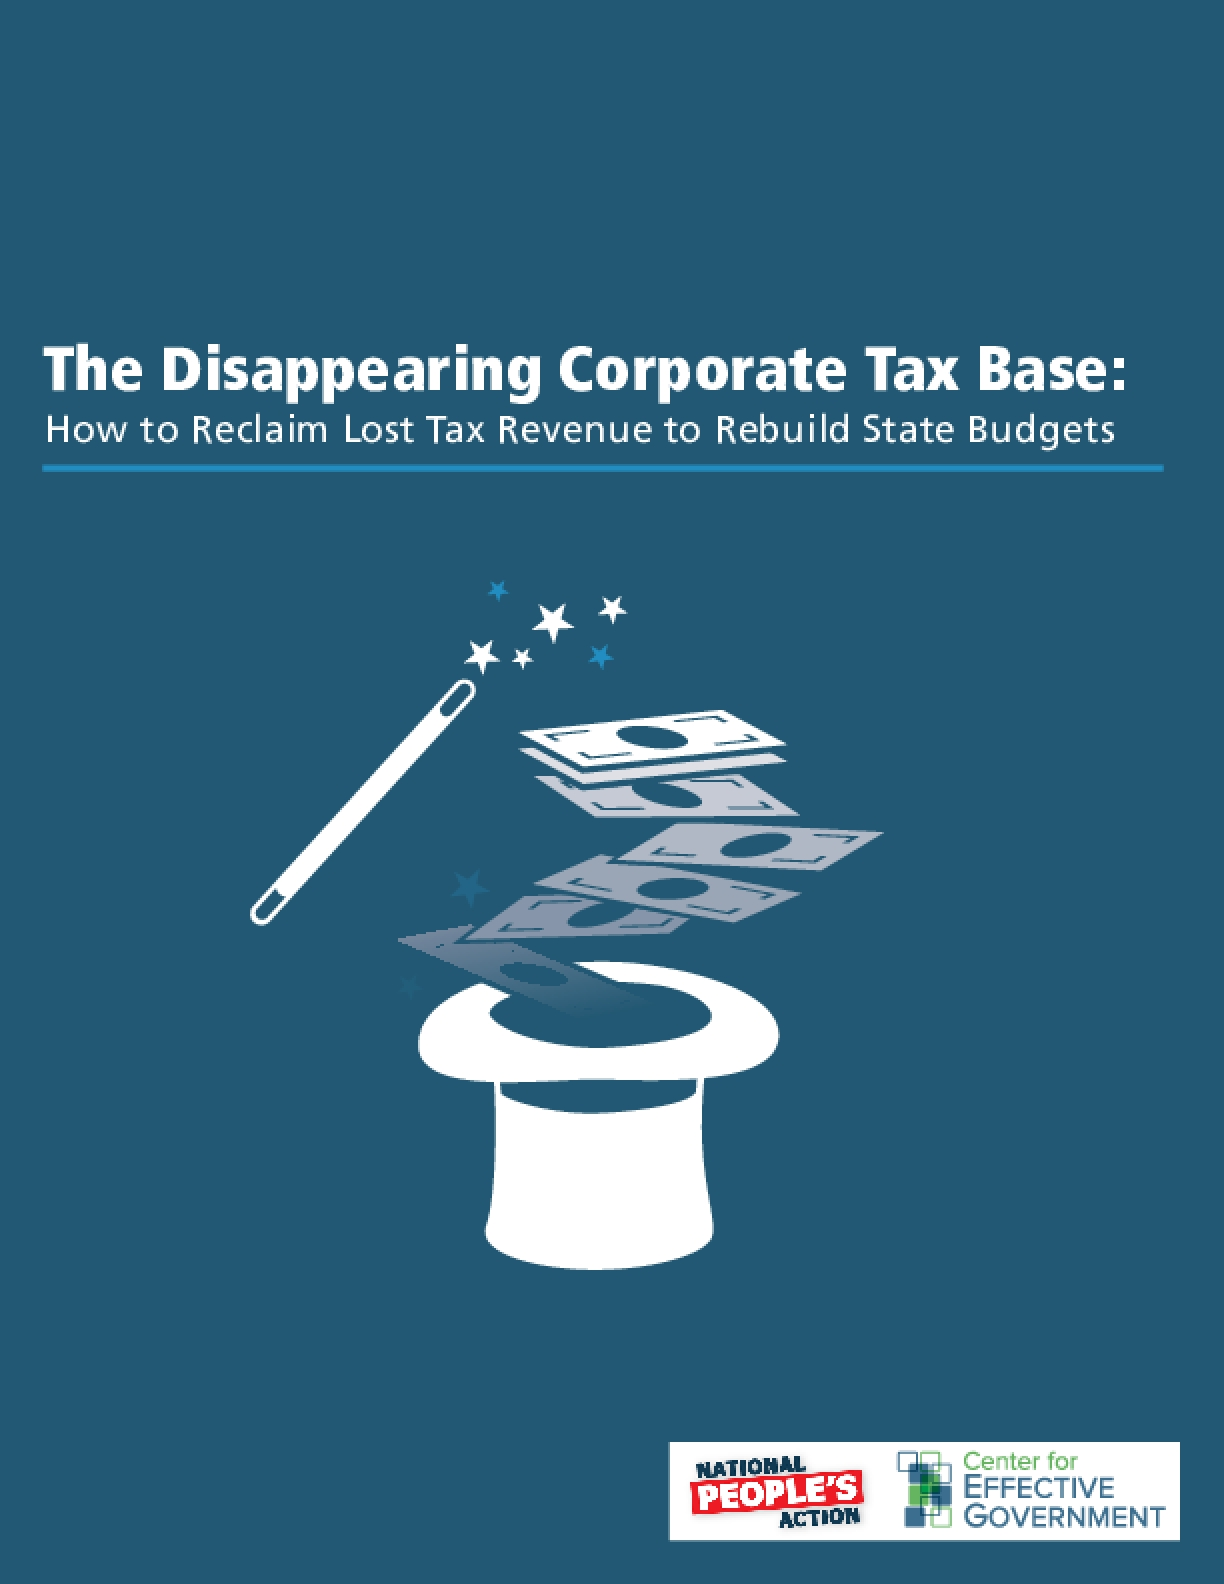 The Disappearing Corporate Tax Base: How to Reclaim Lost Tax Revenue to Rebuild State Budgets